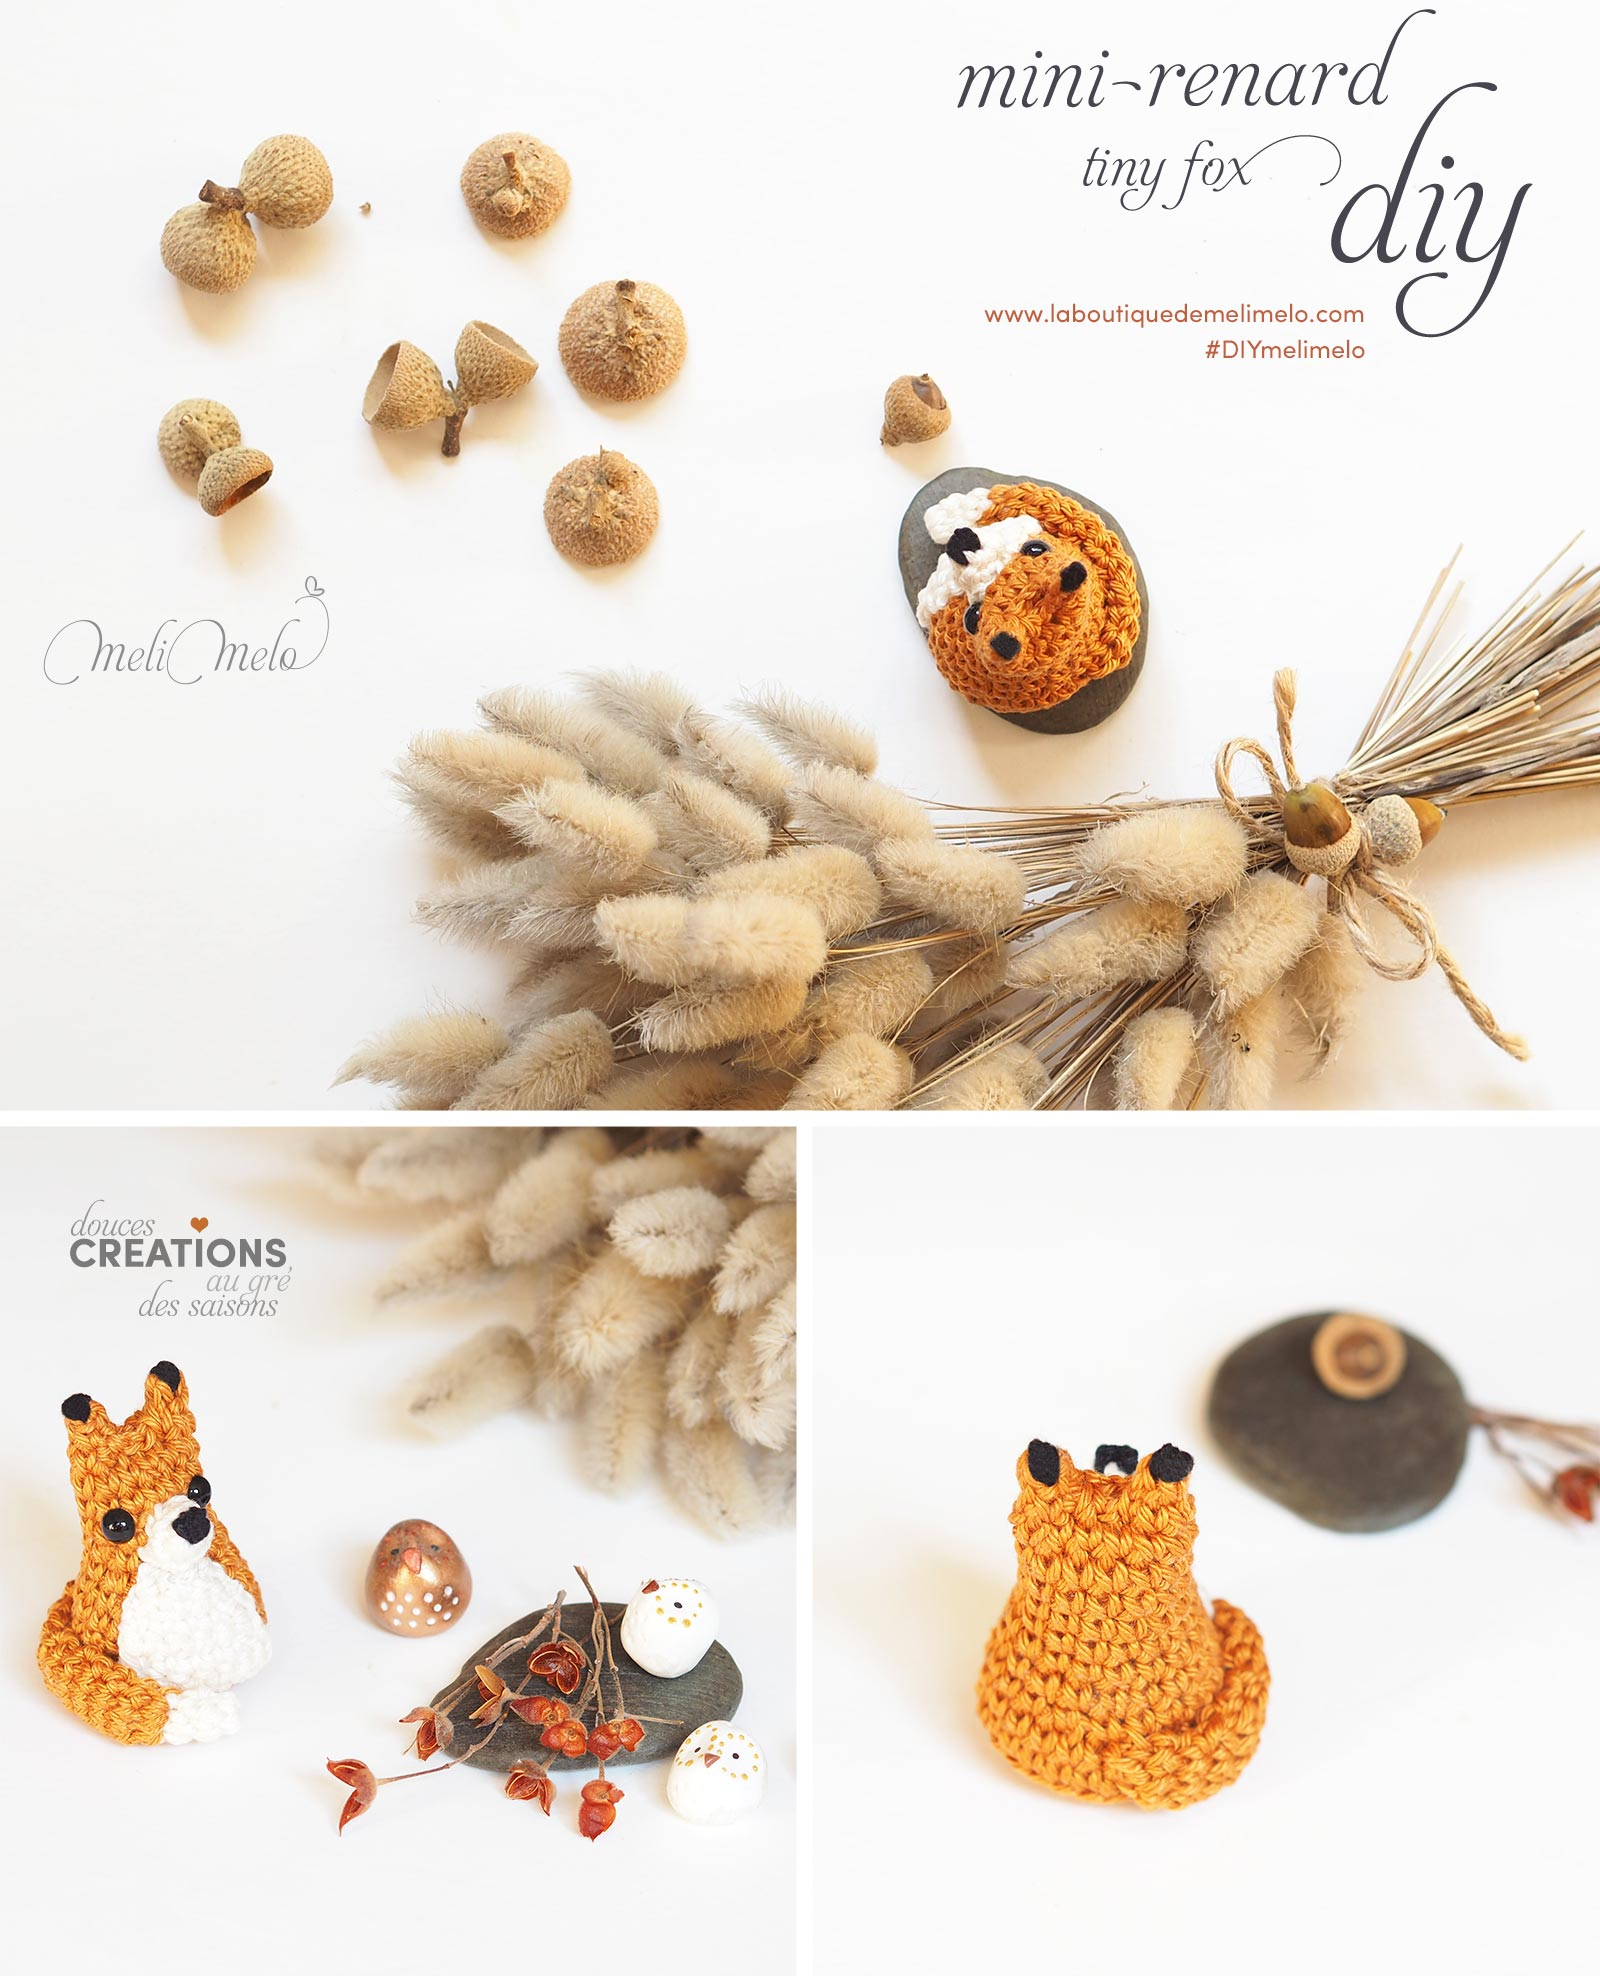 pinterest La Boutique de MeliMelo DIY tuto crochet tiny fox mini renard